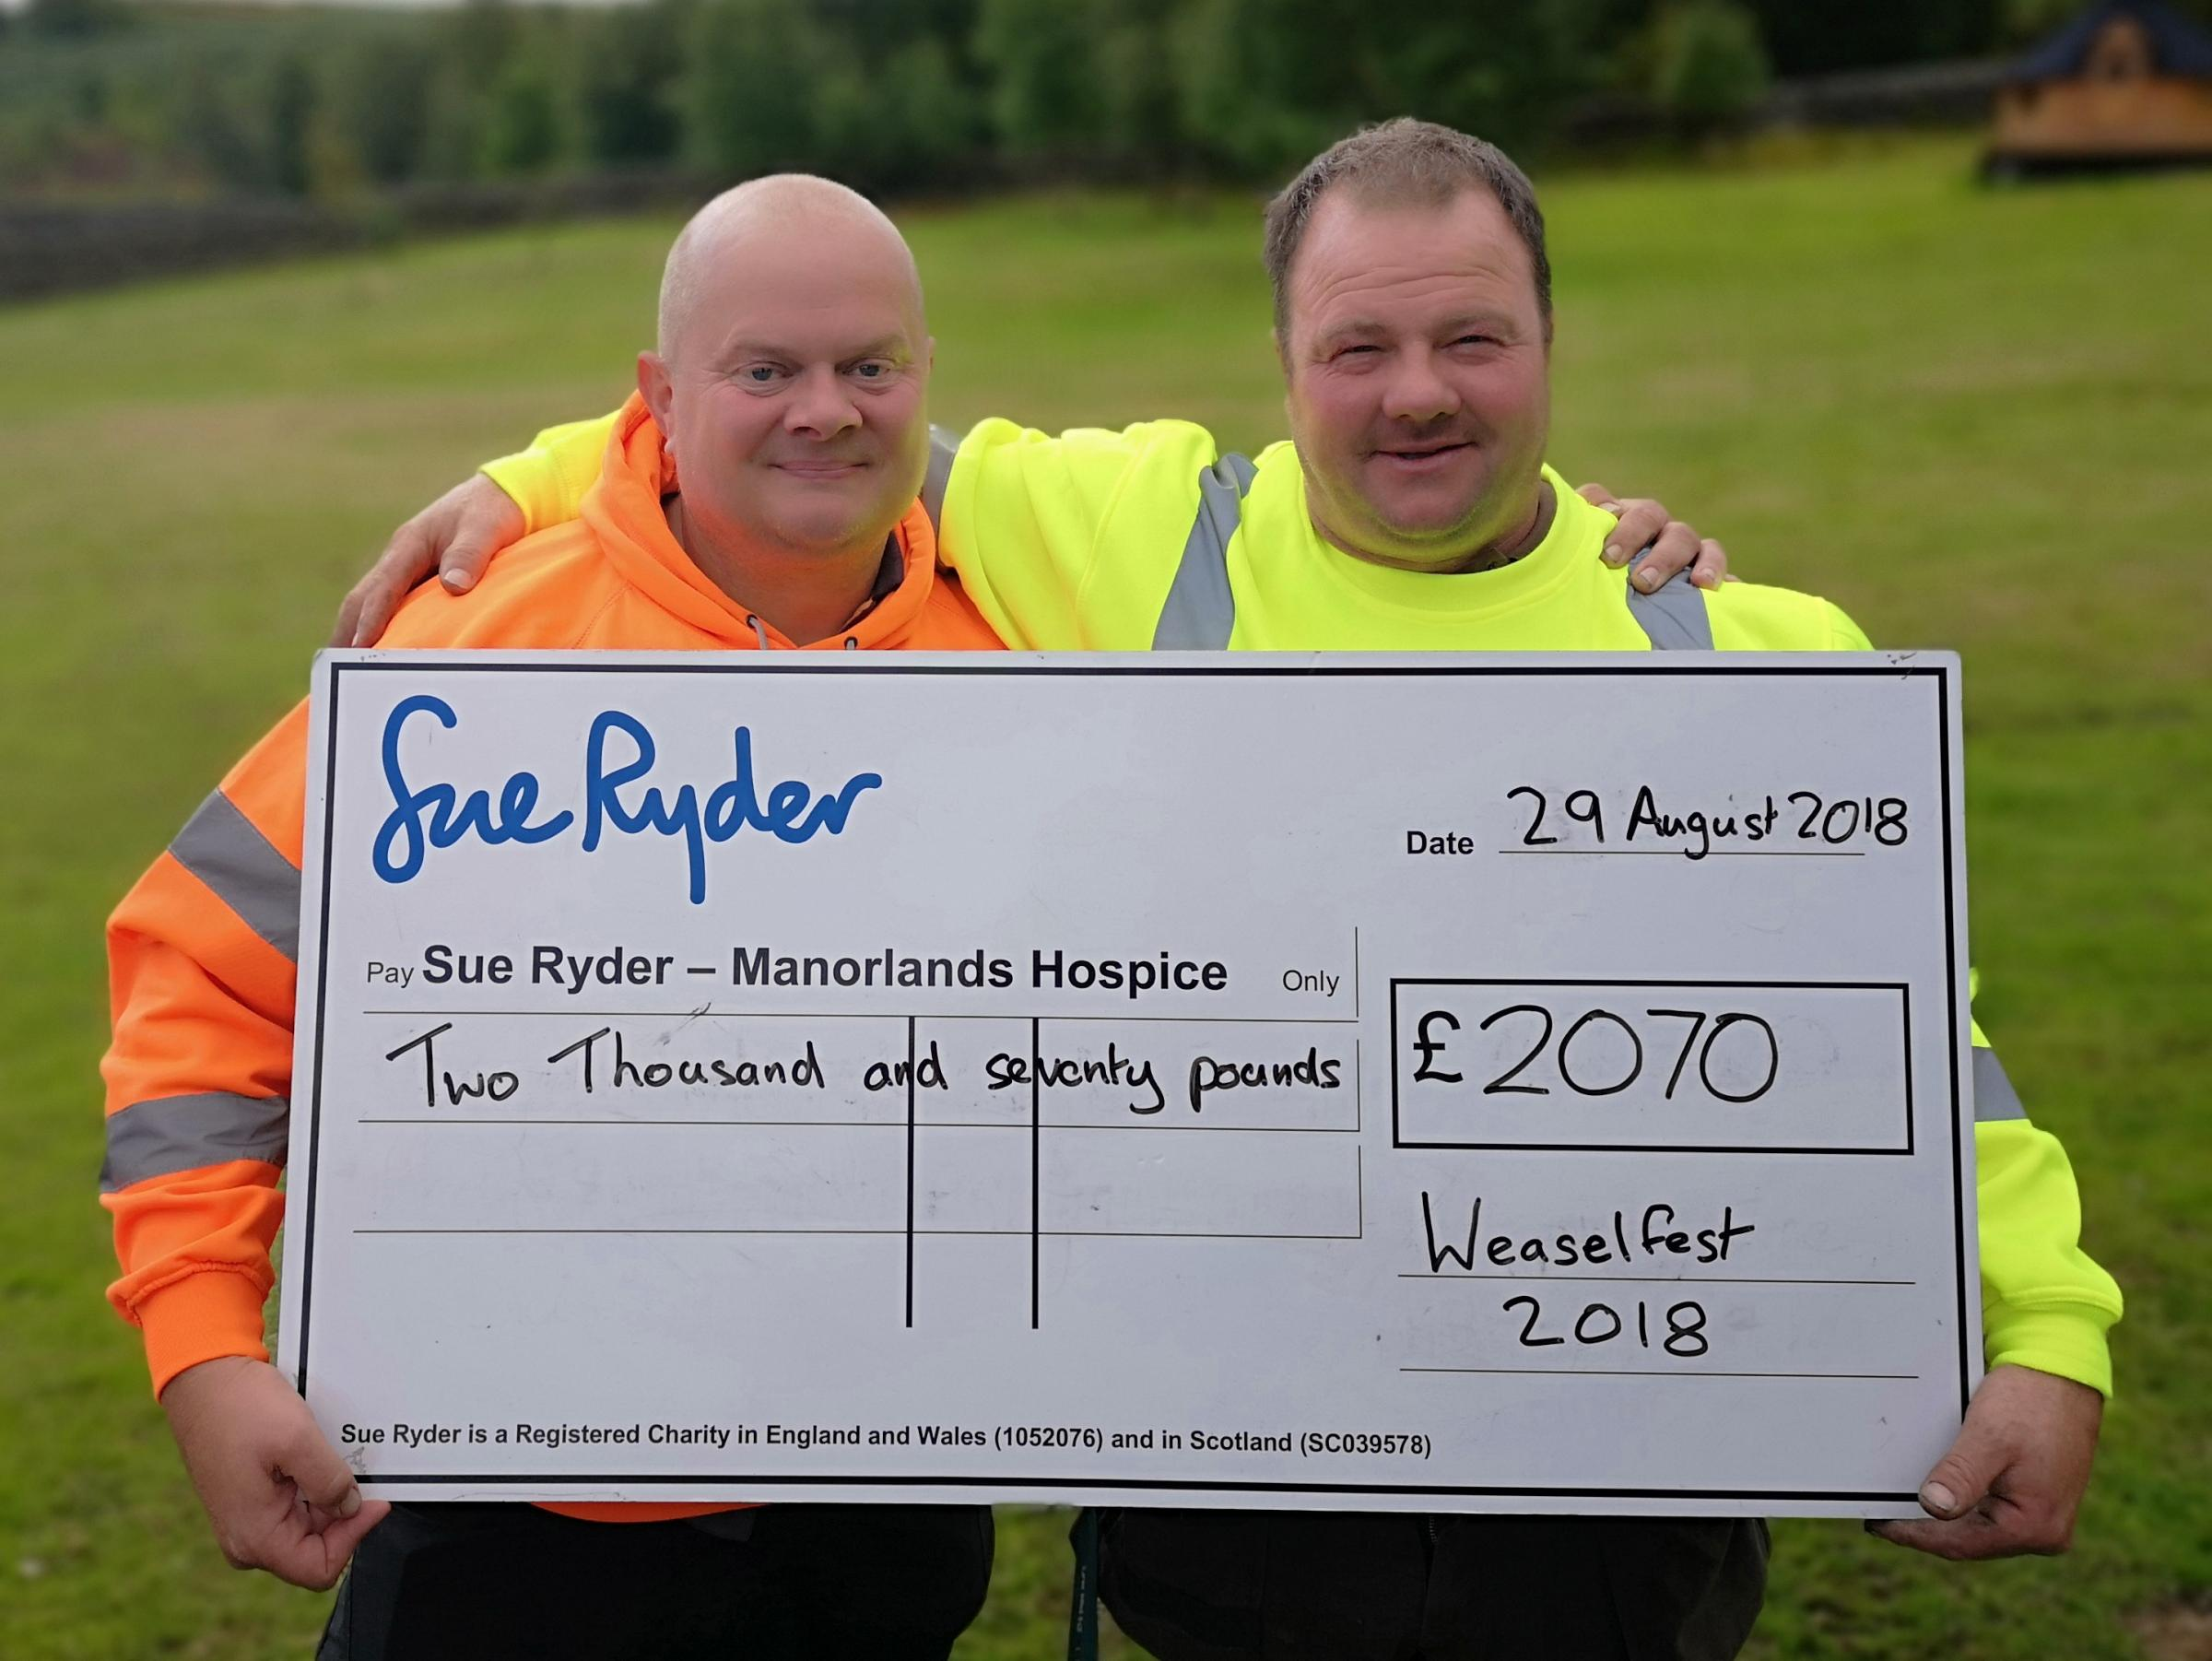 Stuart Currie and Mick Dowse with their cheque for Manorlands